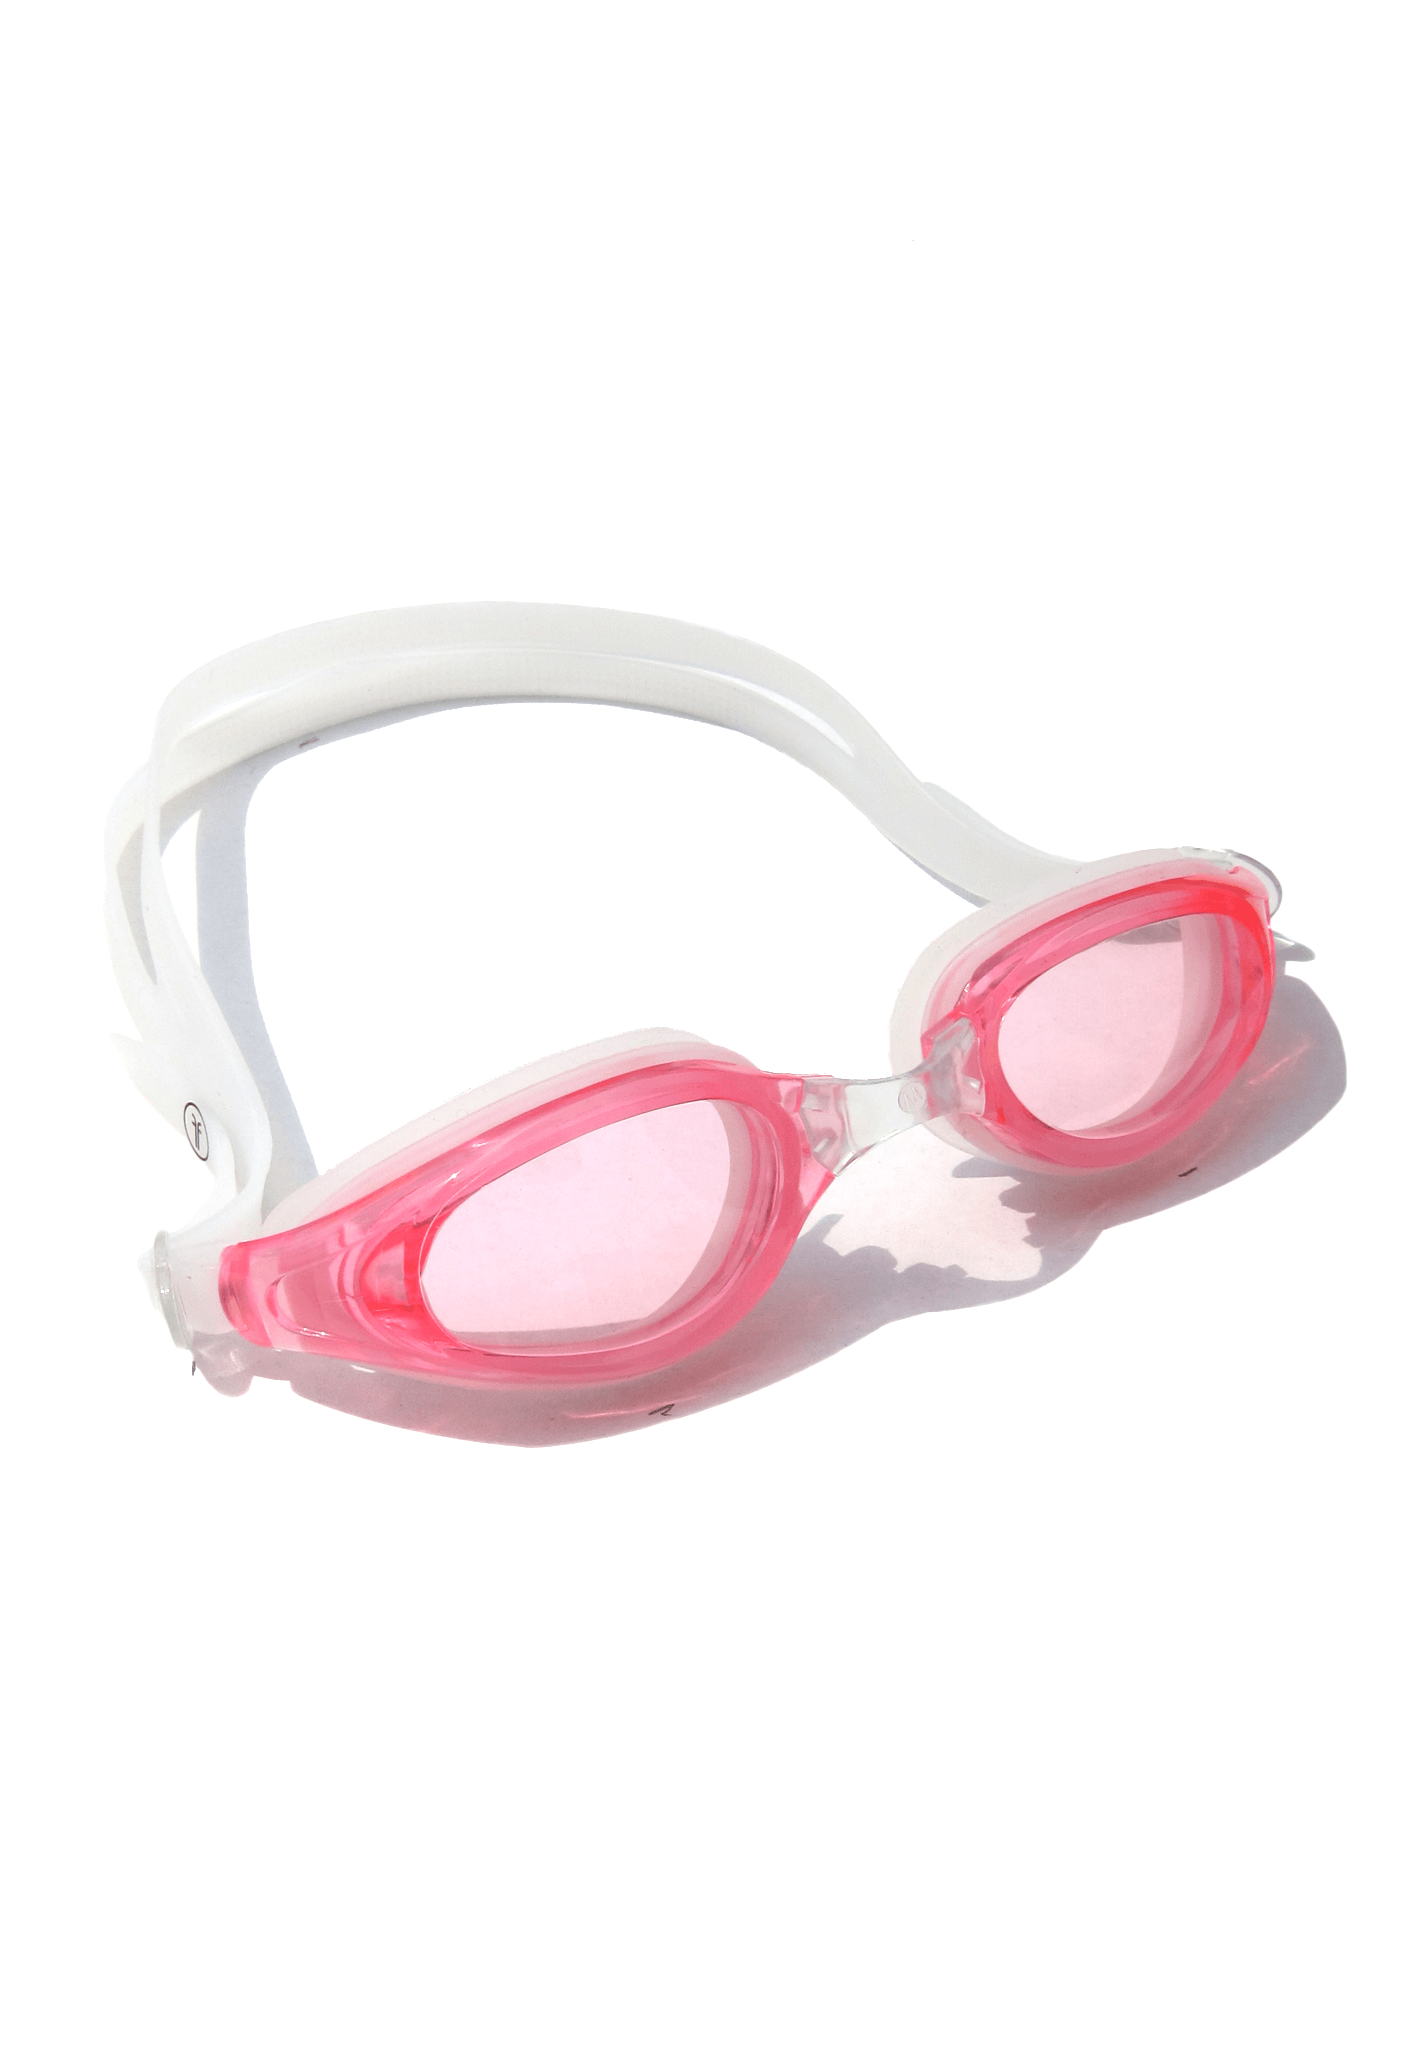 Leisure Wide-Framed Goggles (Pink)